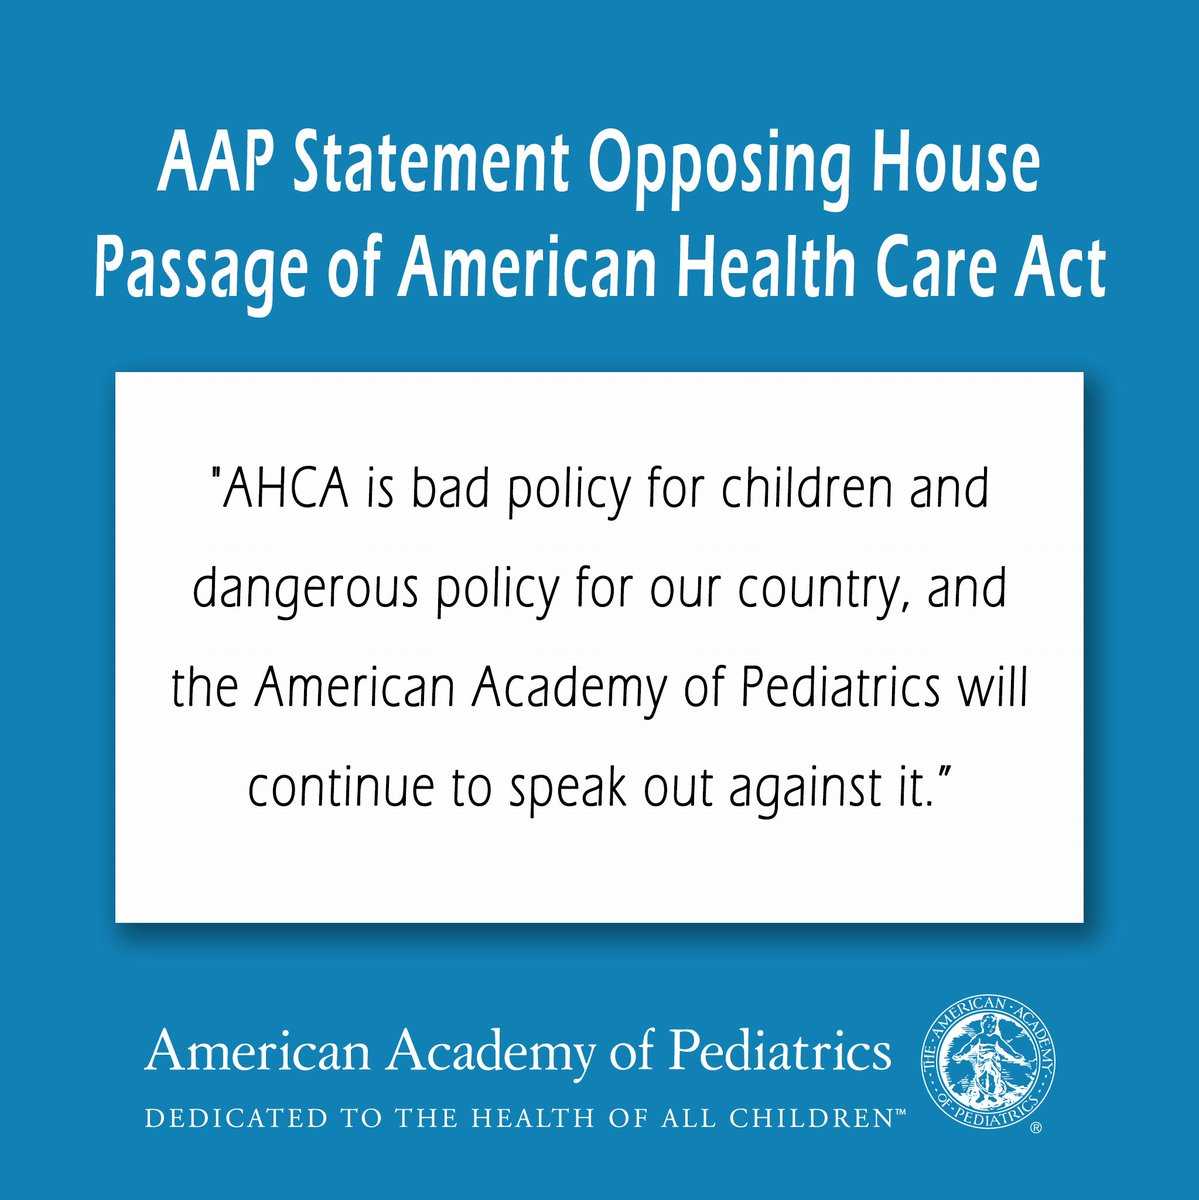 #AHCA just passed the House, reversing progress to #KeepKidsCovered. Our statement: https://t.co/ZnIhHStL29 https://t.co/PYx1HGgKLE